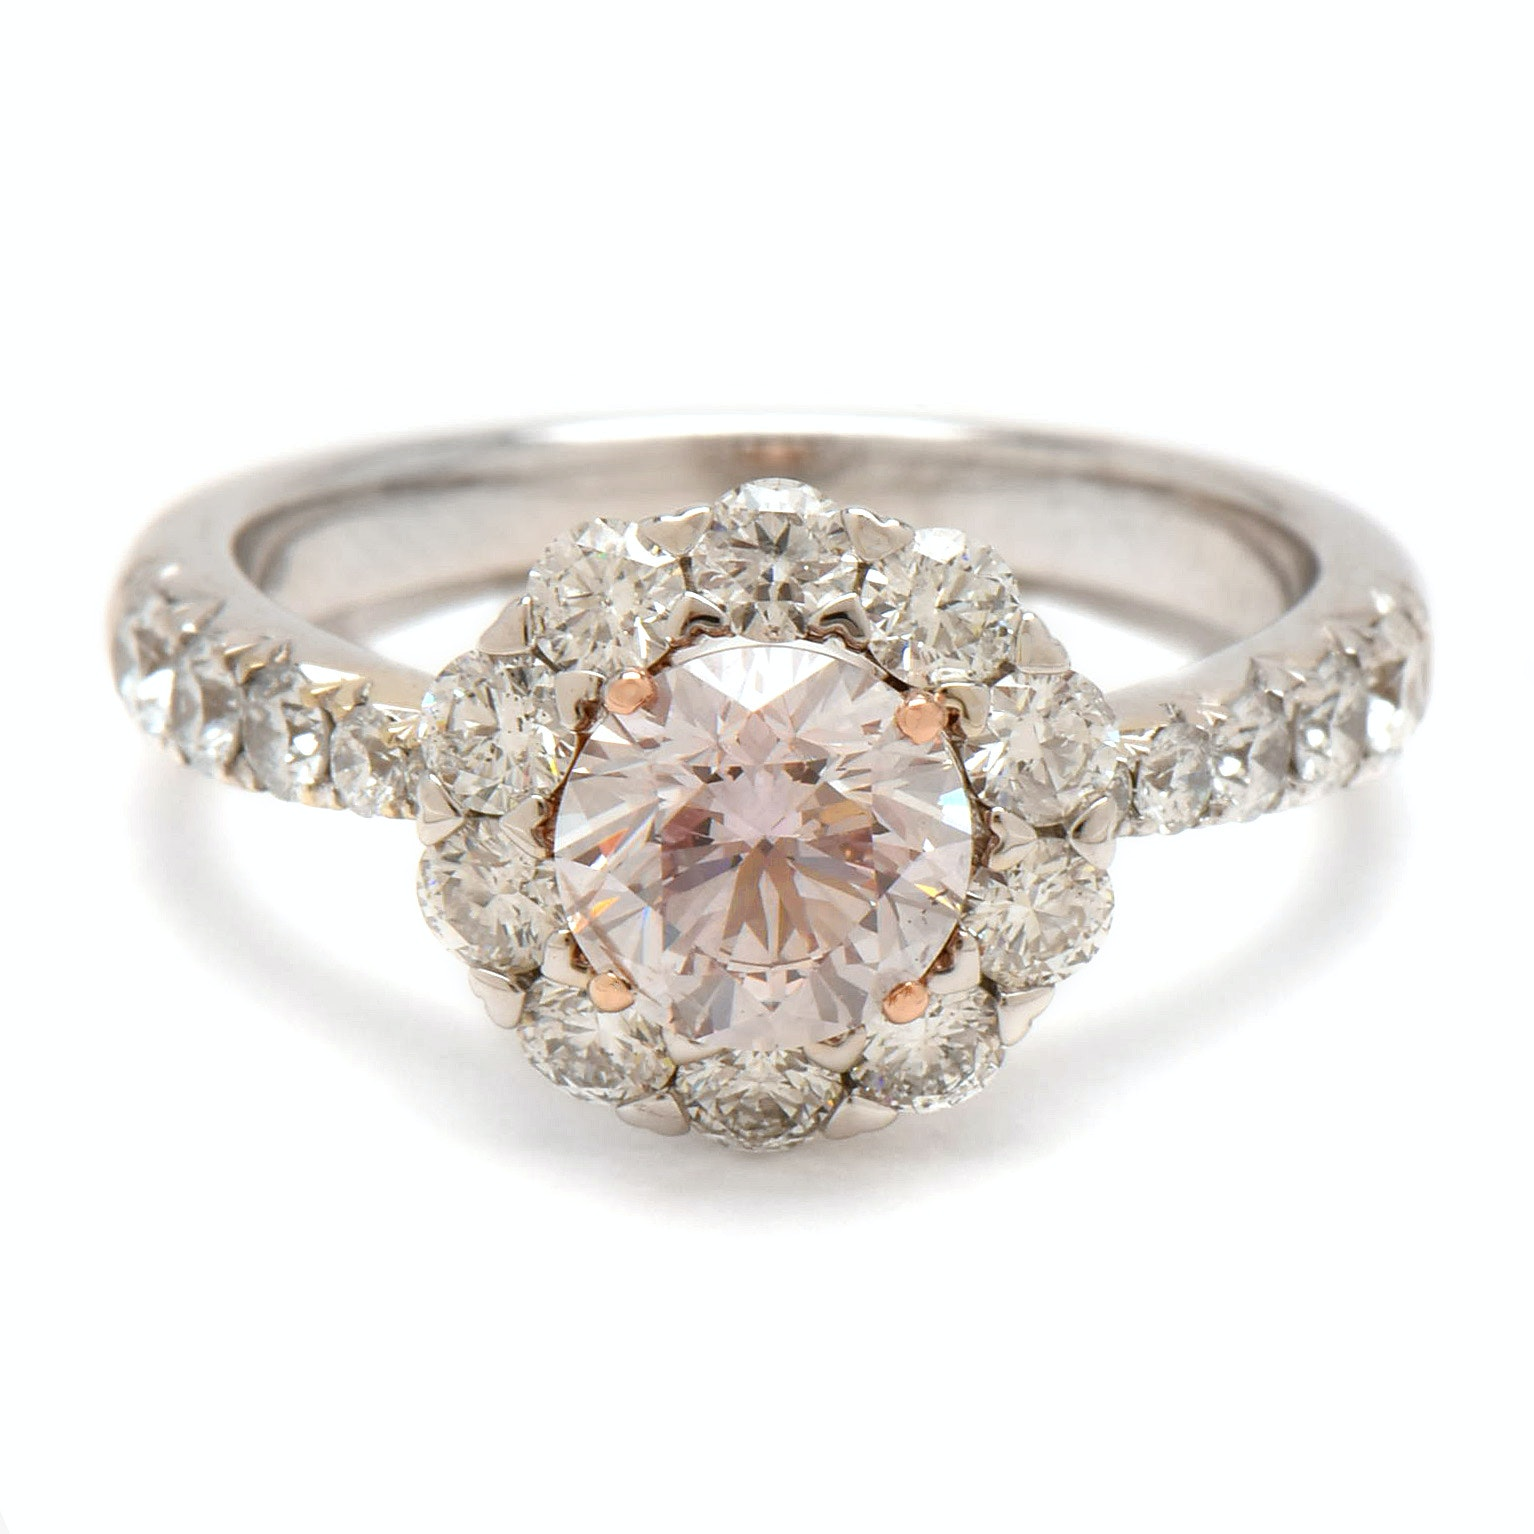 18K White Gold 2.05 CTW Diamond Ring with Very Light Pink Diamond and GIA Report